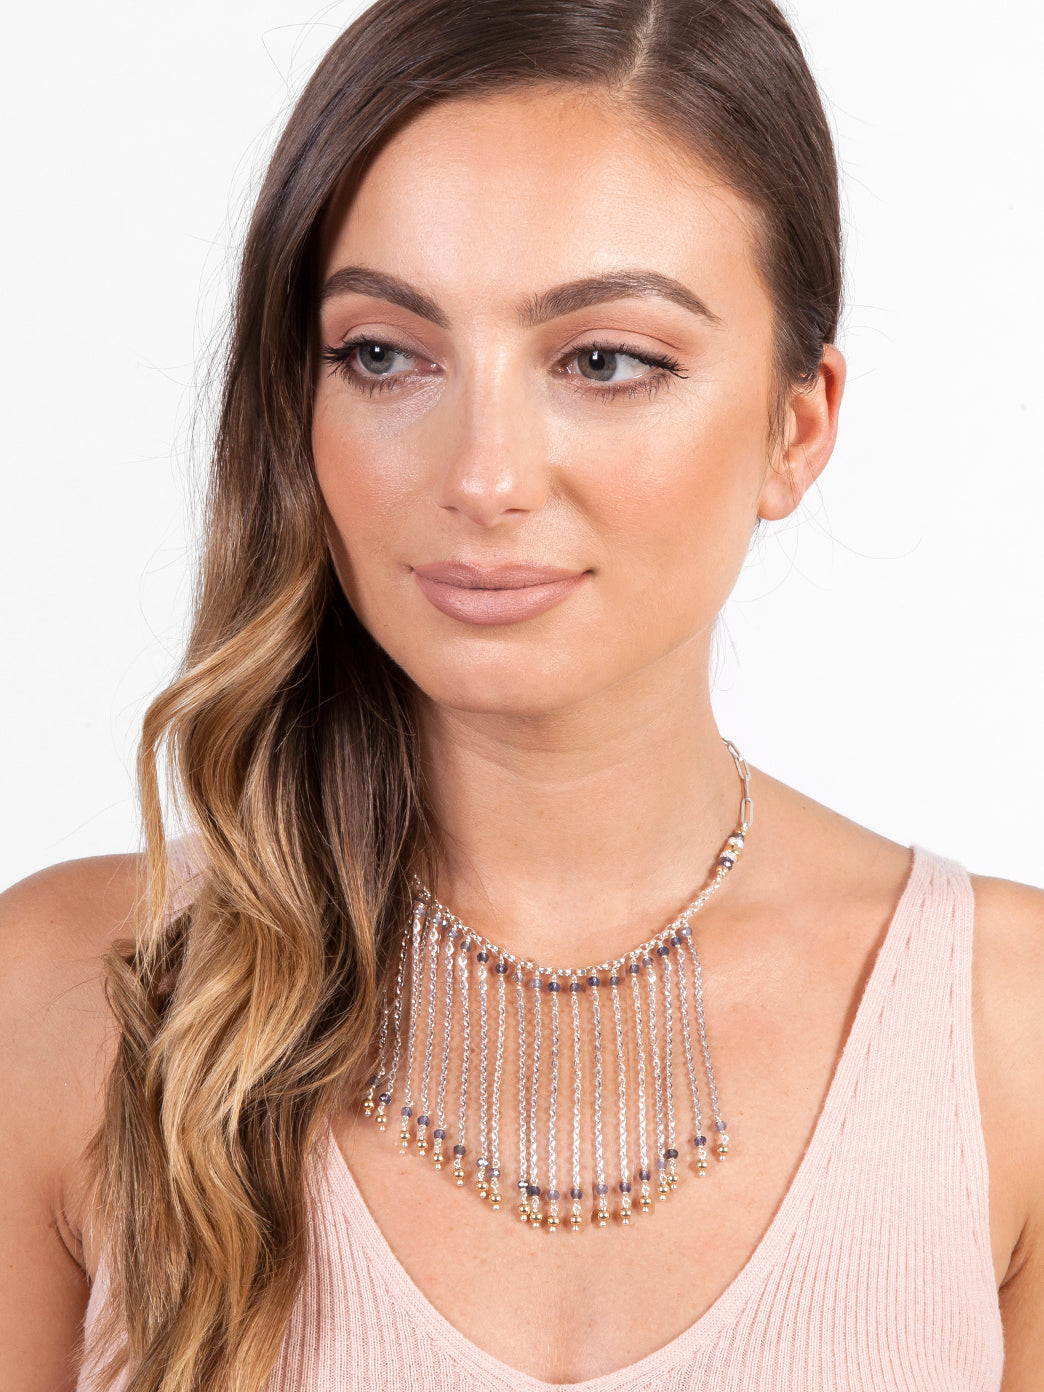 Fiorina Jewellery Fringe Choker Model